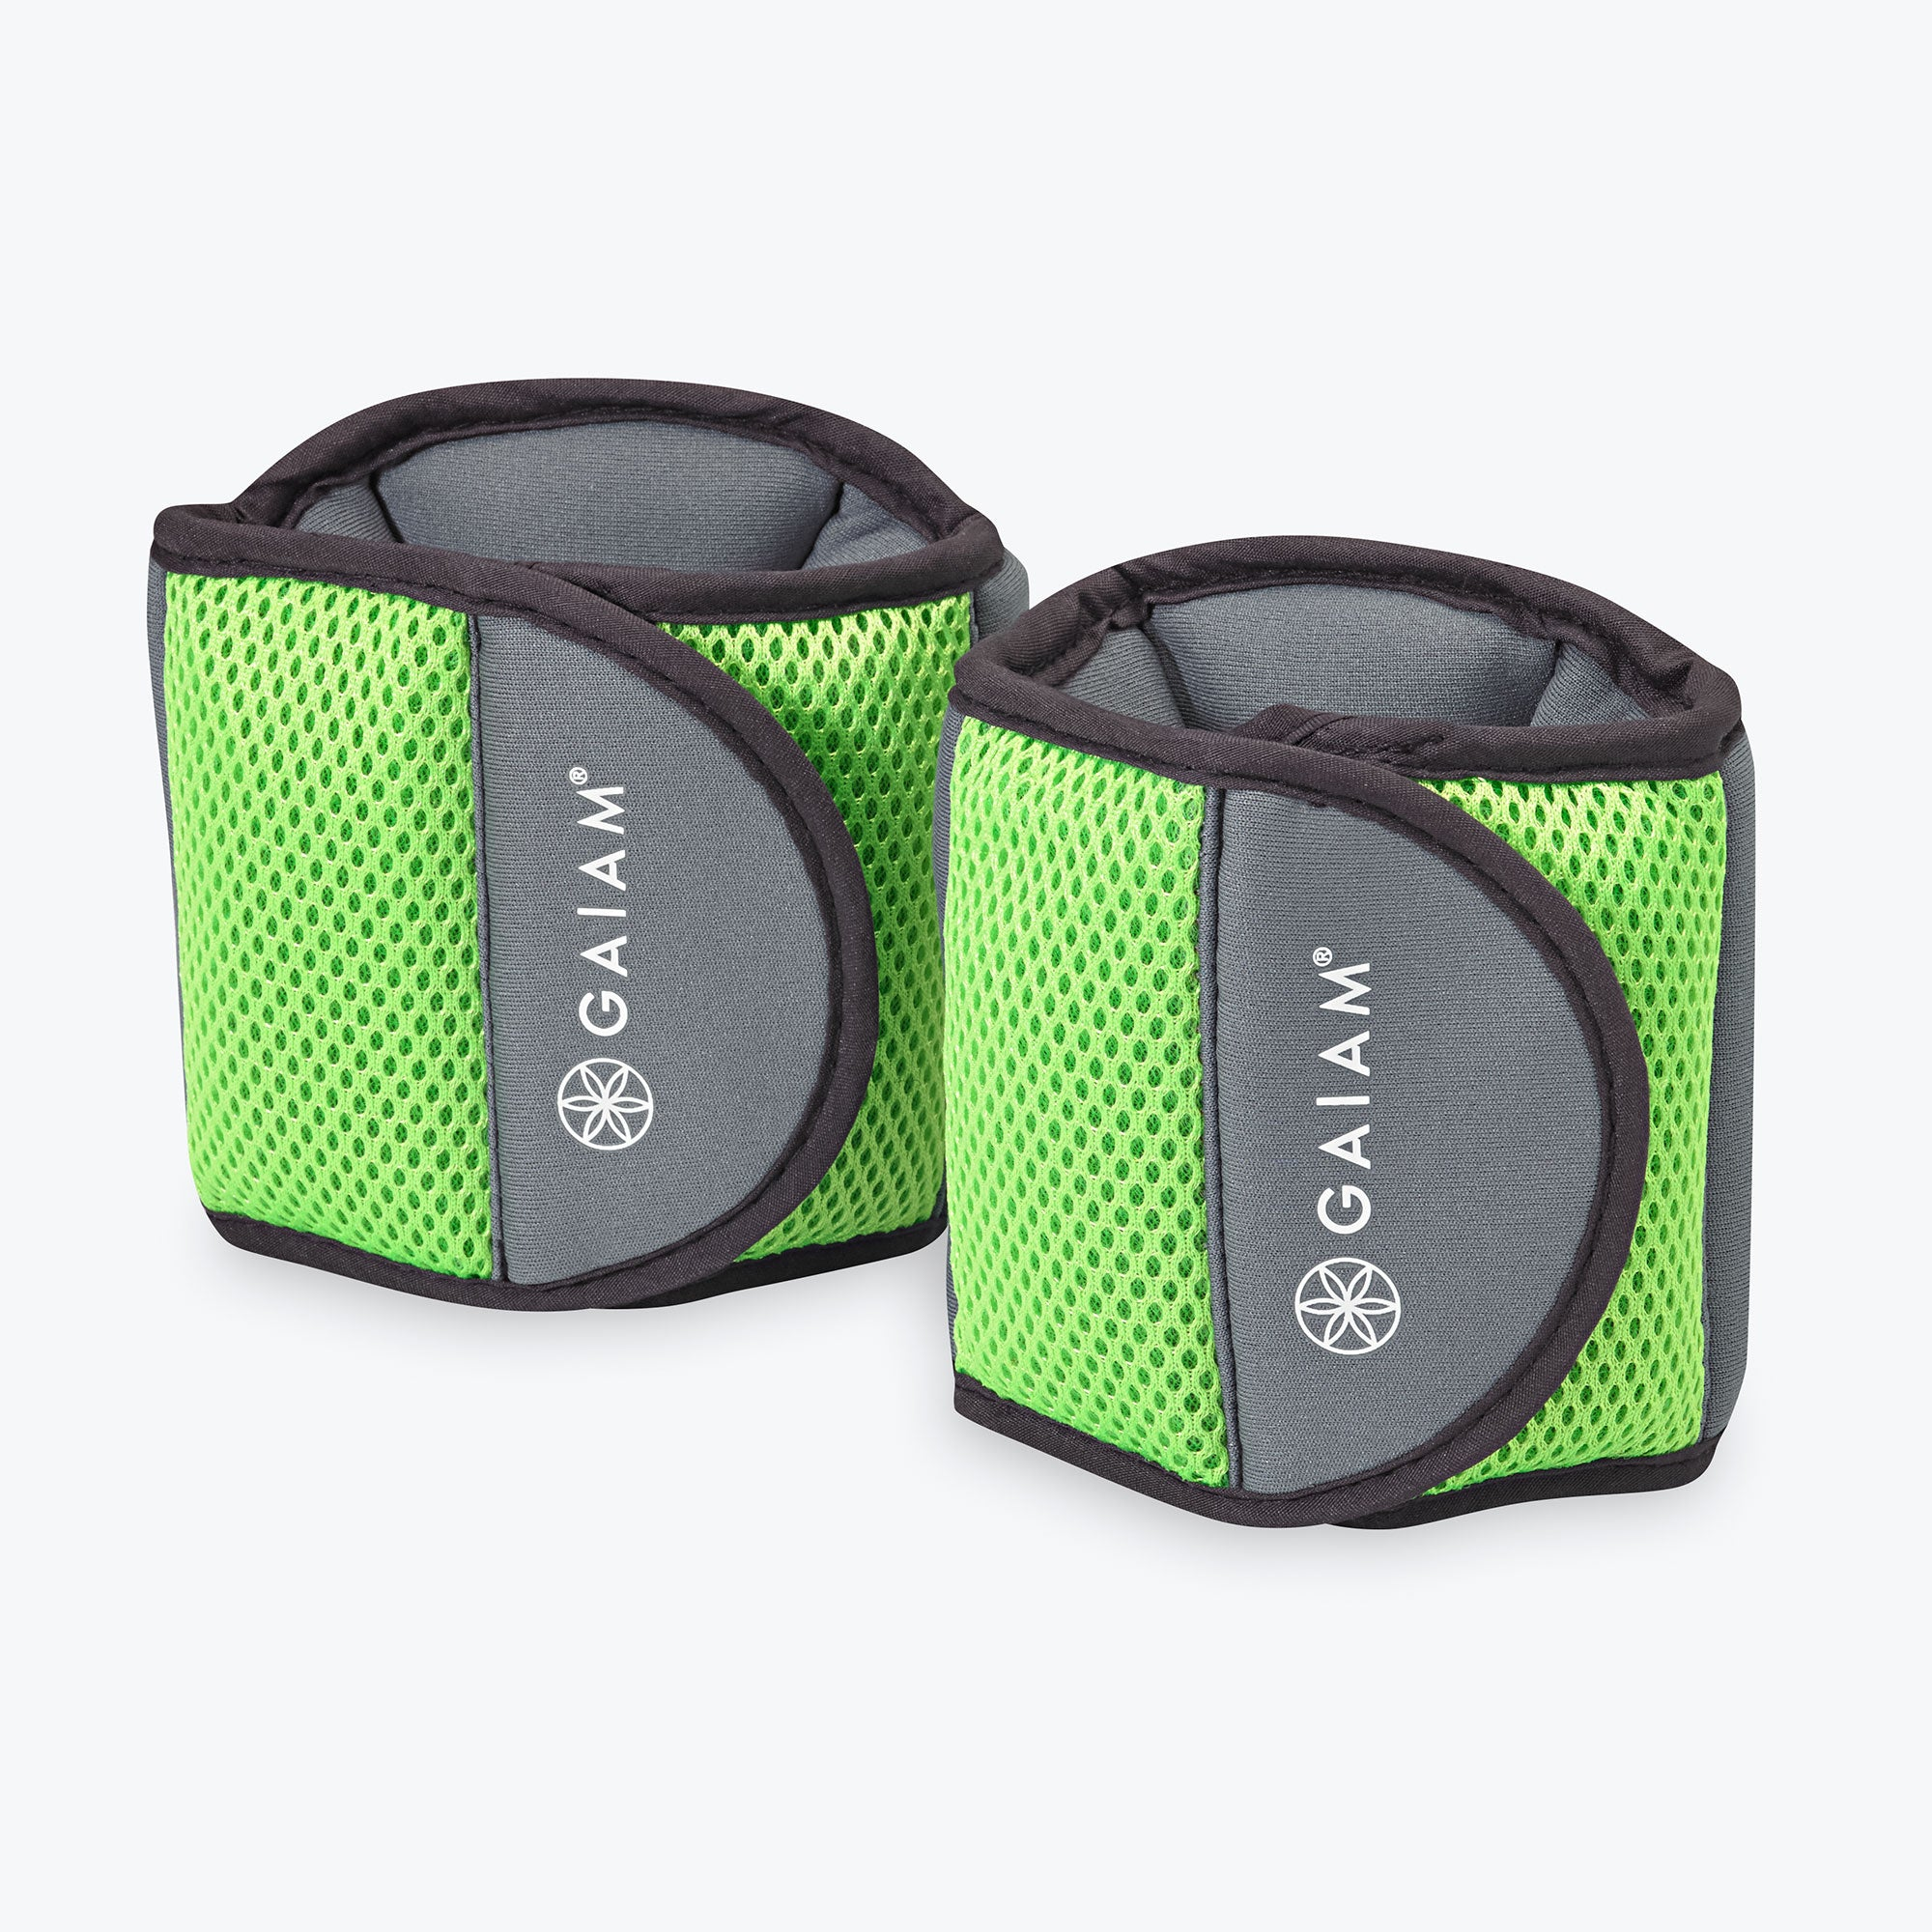 Image of Ankle Weights - 5lb Set